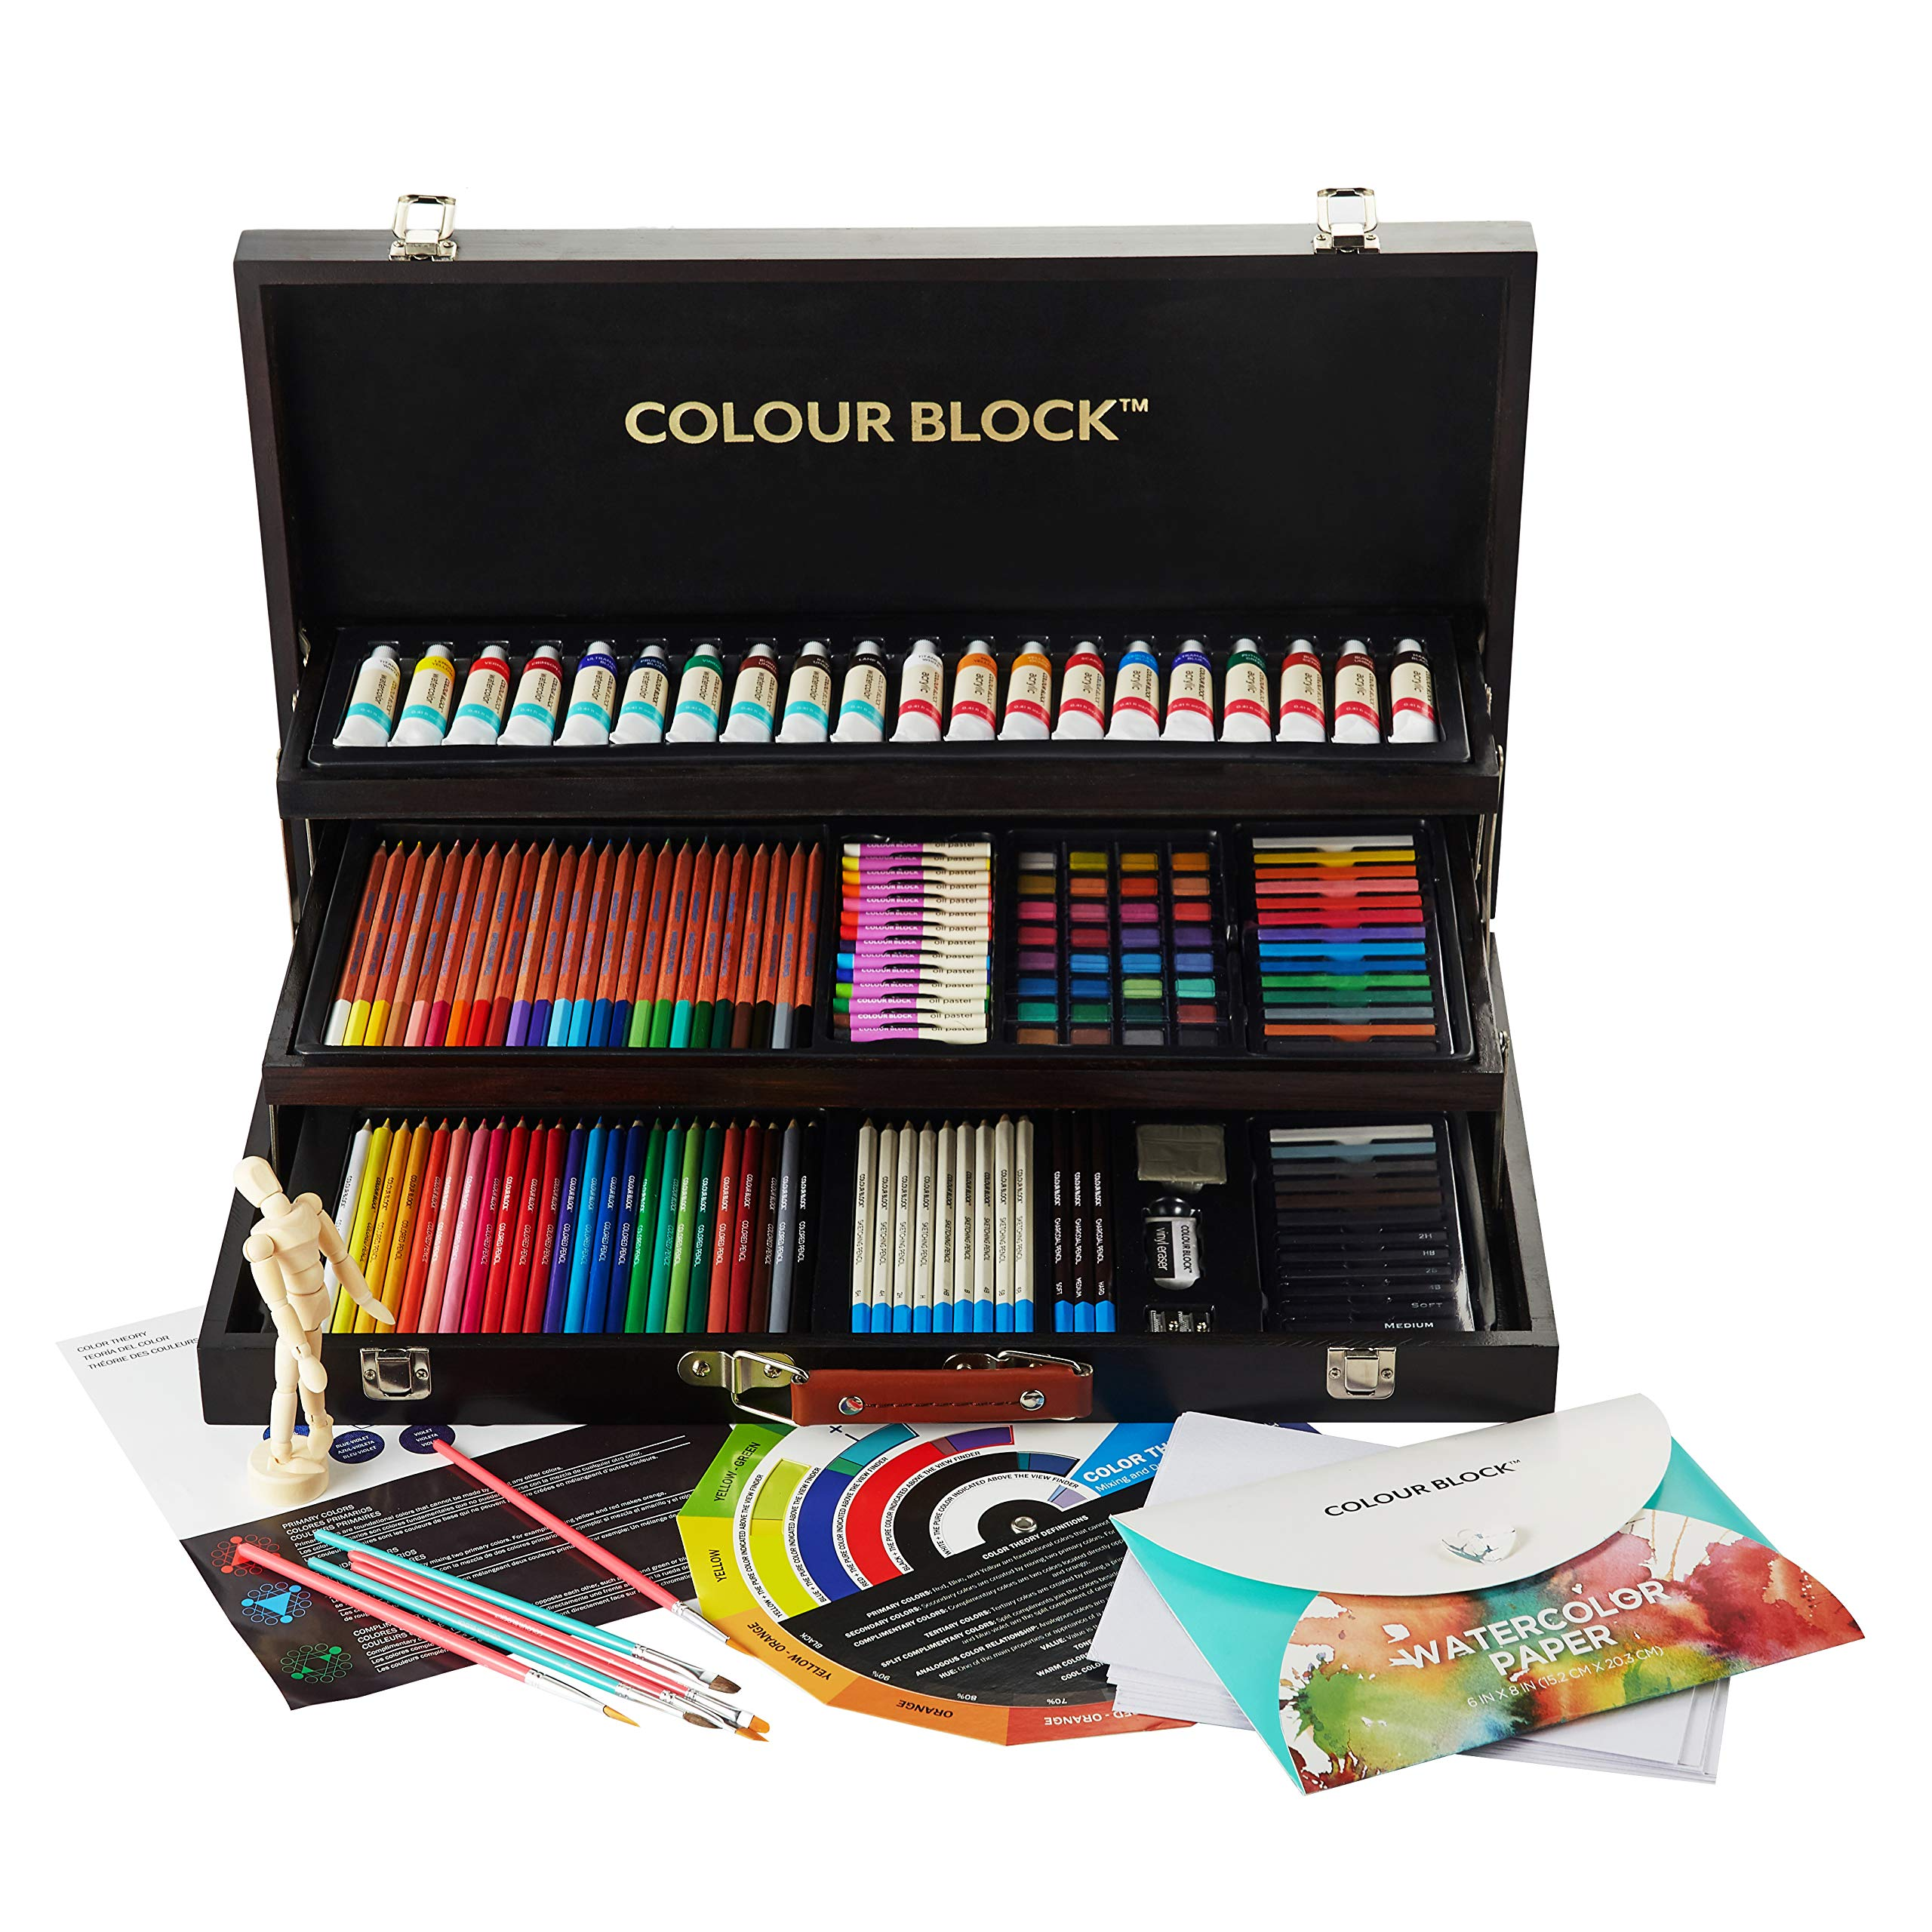 COLOUR BLOCK Deluxe 181 Piece Mixed Media Art Set in Wooden Case, with Soft & Oil Pastels, Acrylic & Watercolor Paints, Sketching, Charcoal & Colored Pencils, Coloring Card and Tools